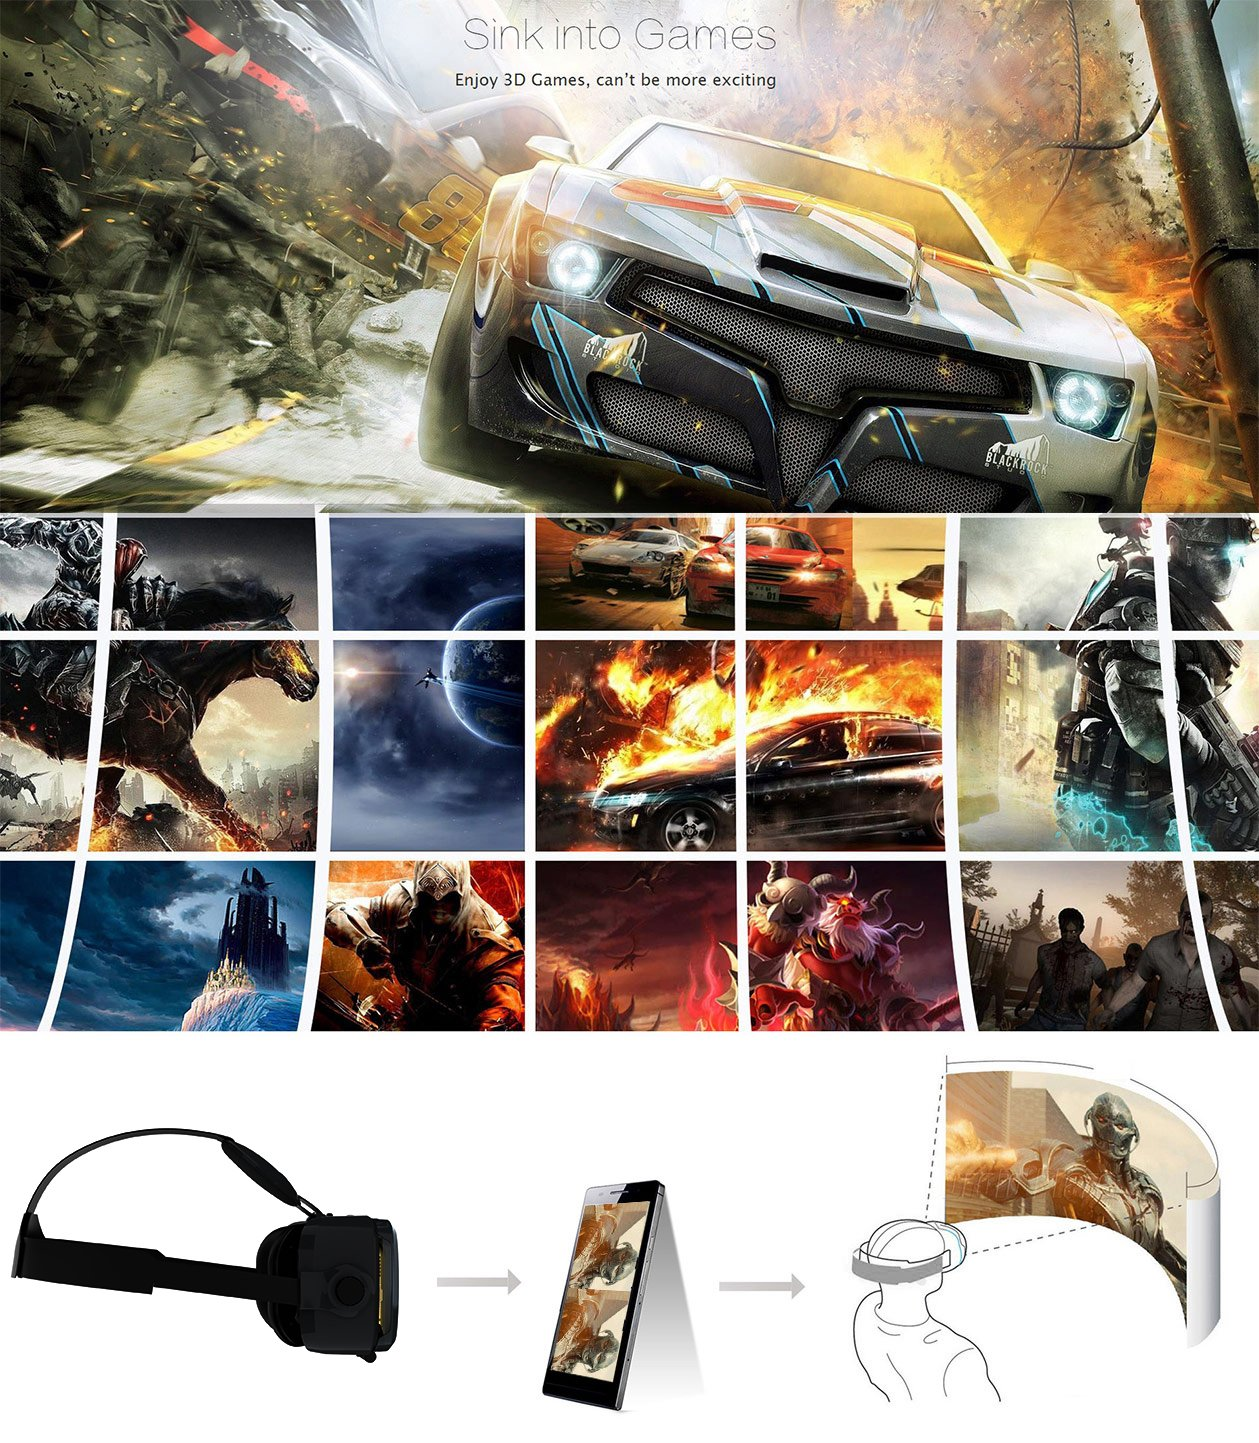 Joystick for Android Smartphones Gamepad Tablets Hi-Shock/® Bluetooth Game Controller Rechargeable | Android | Black